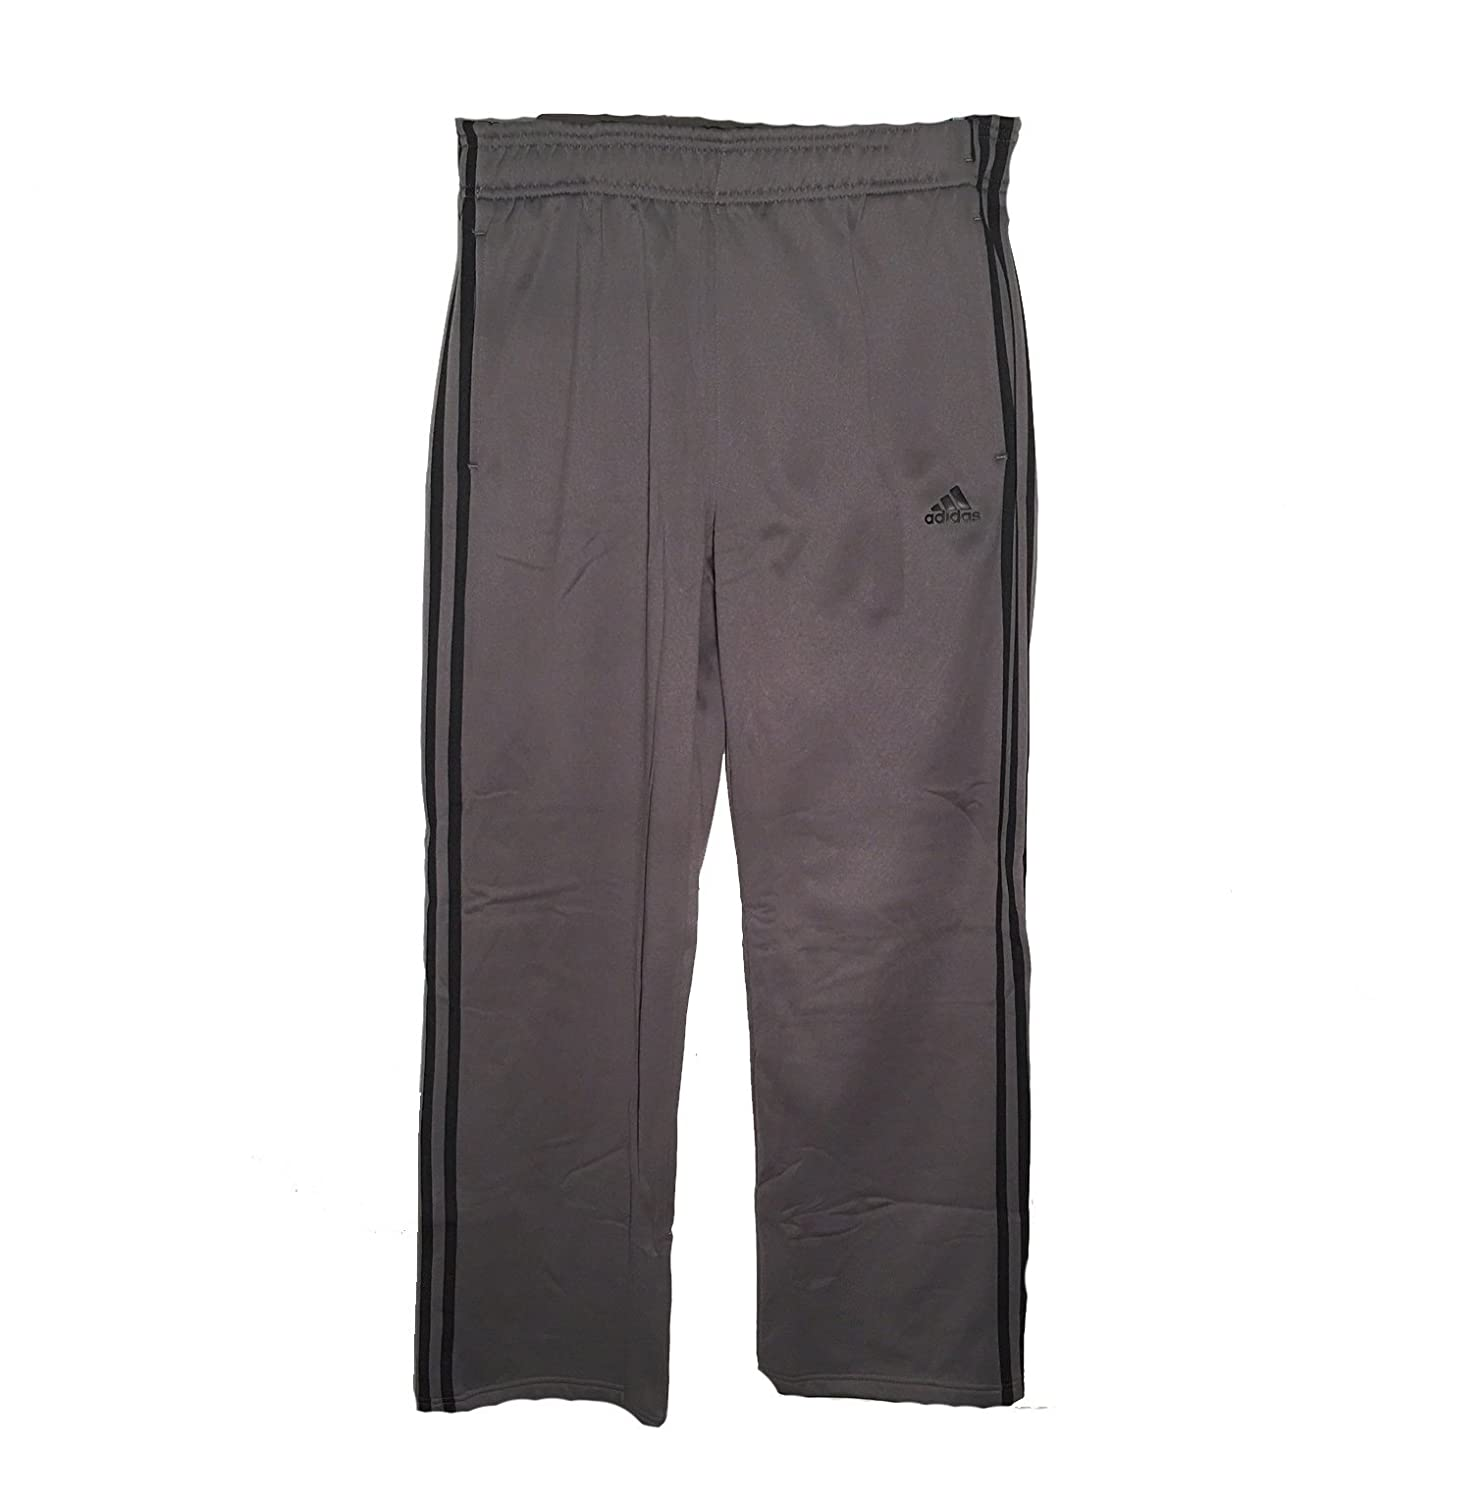 Adidas Boys Activewear - Athletic Pants for Boys and Youth Size 8-18